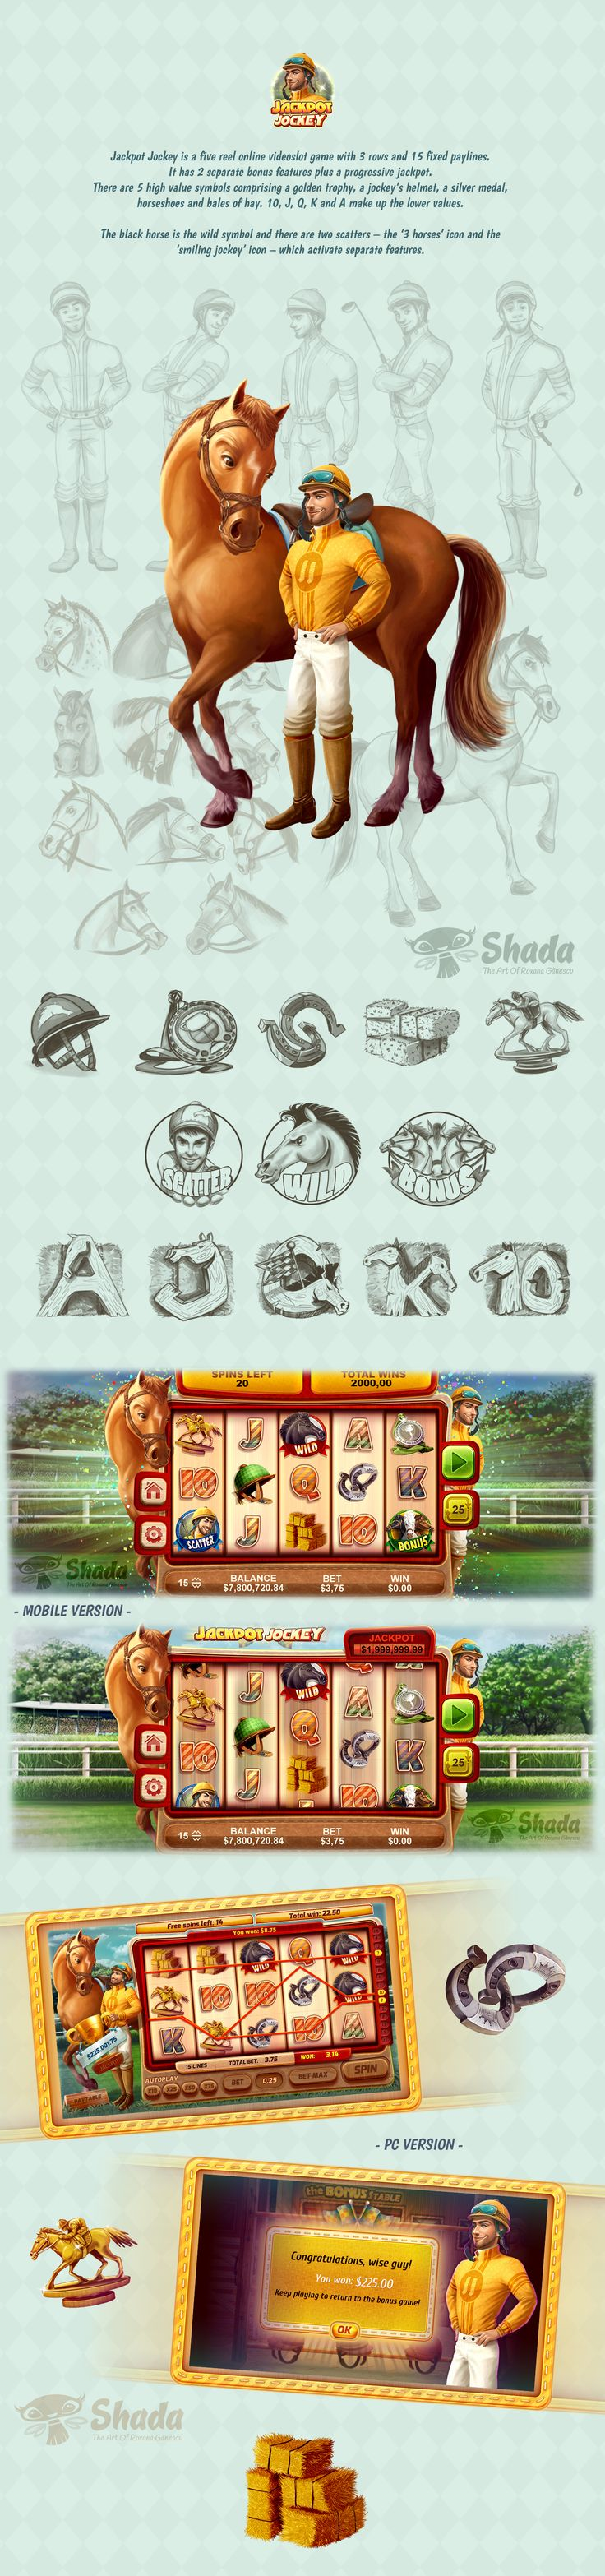 Jackpot Jockey- Videoslots Game on Behance